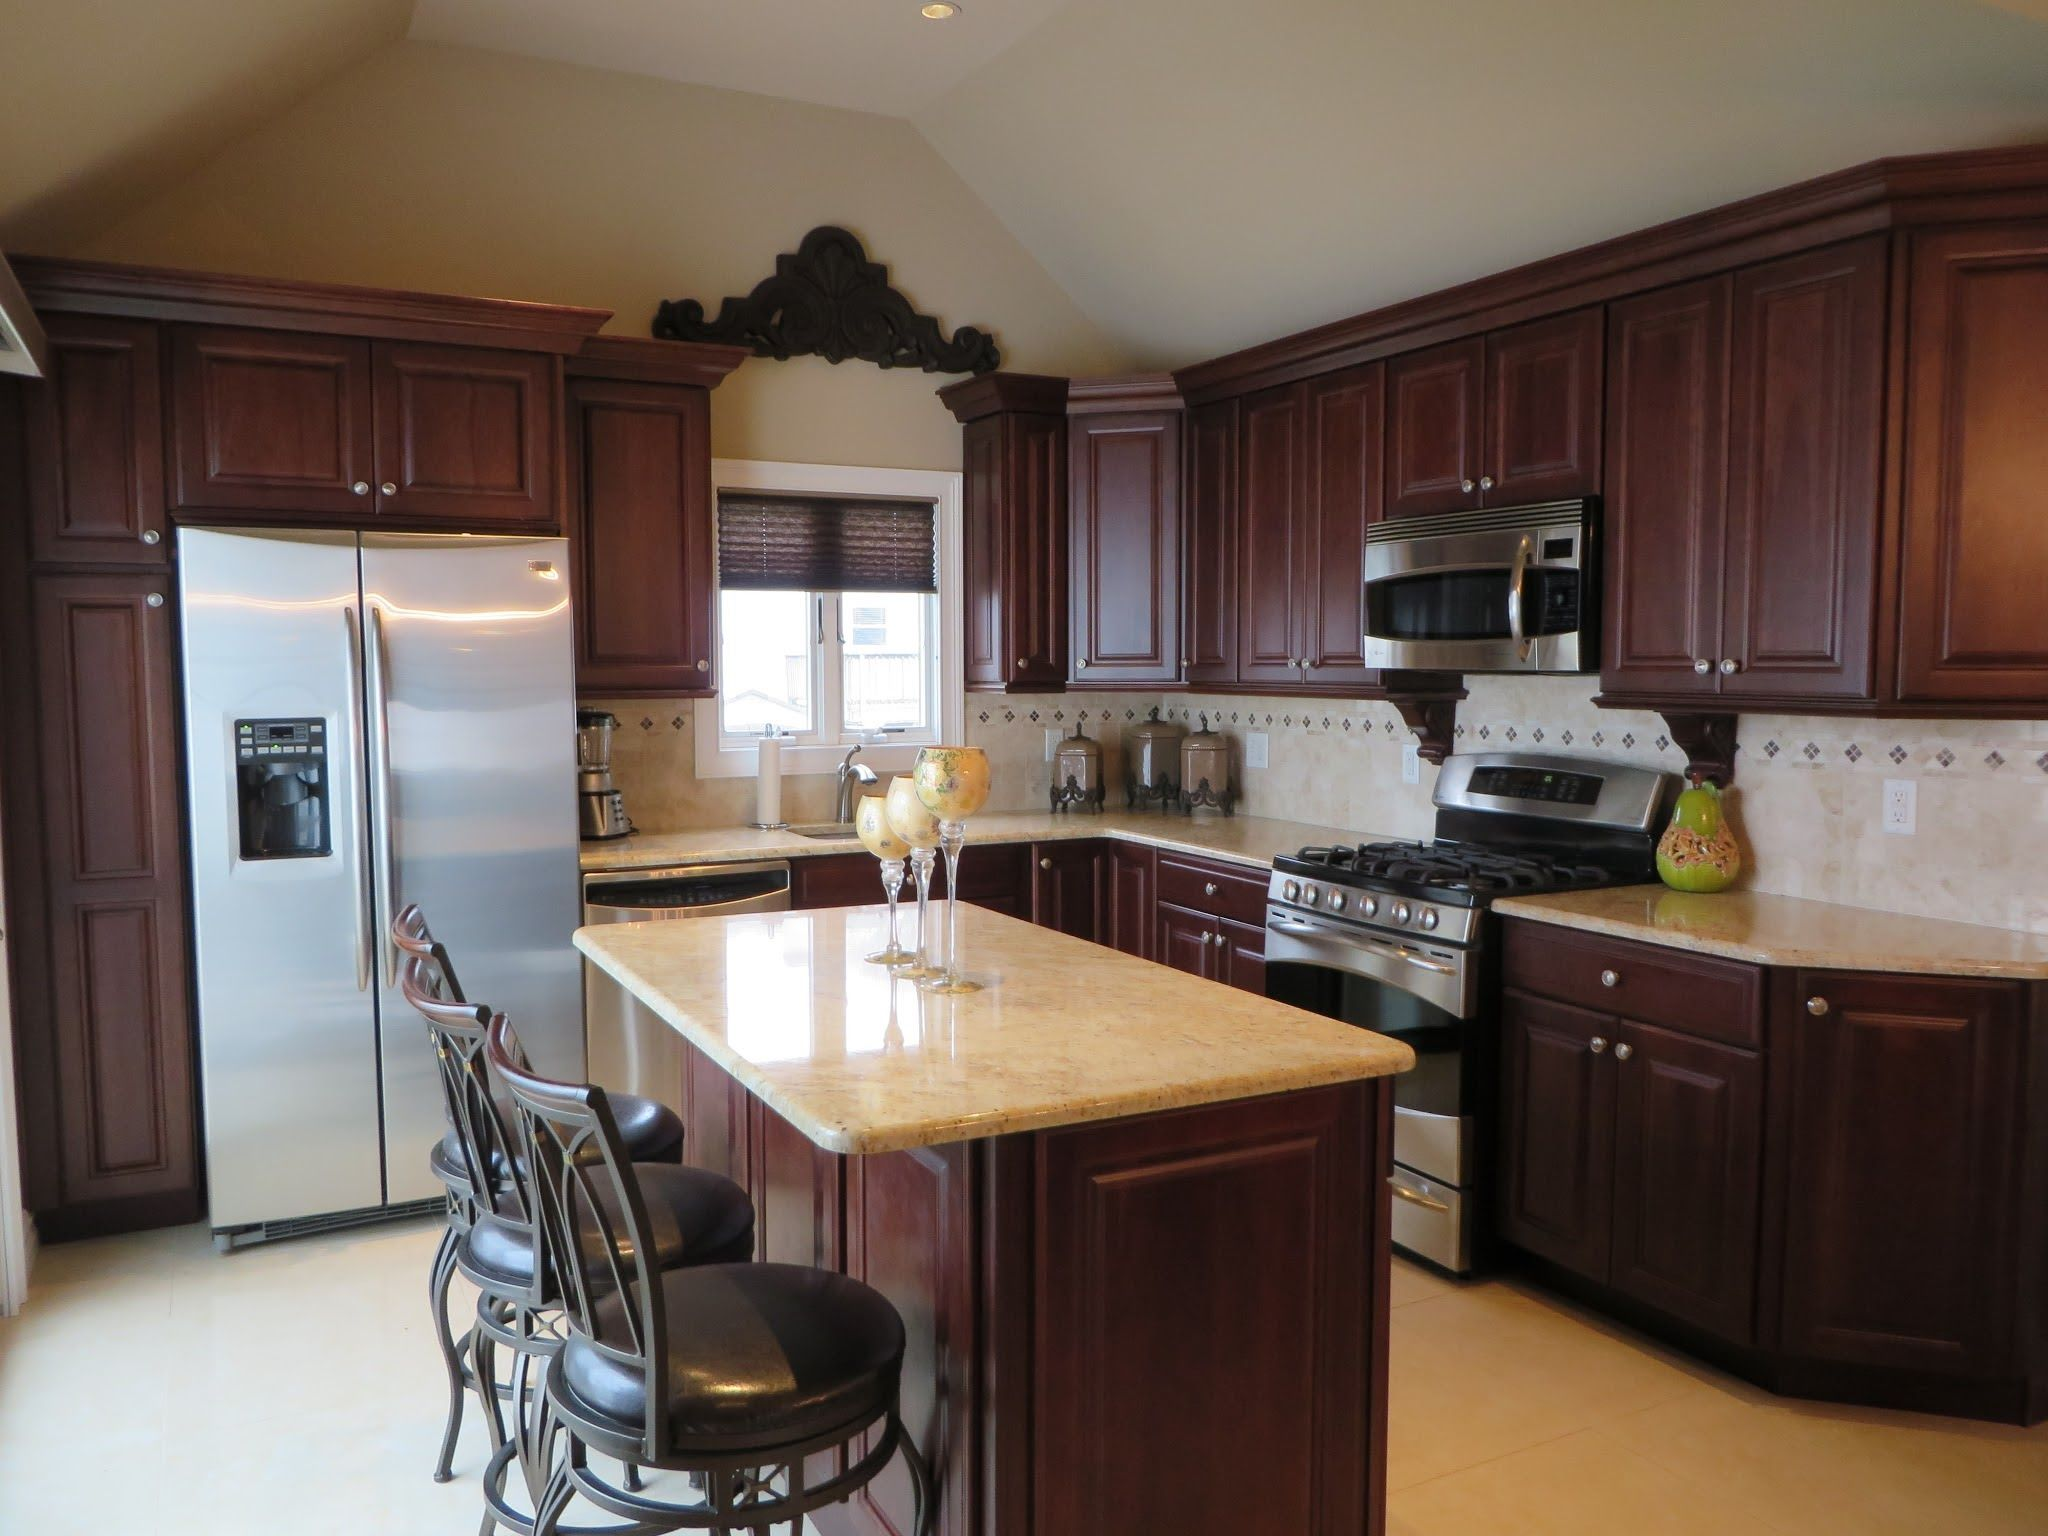 Www Russellhayek Com With Images Kitchen Kitchen Cabinets Home Decor